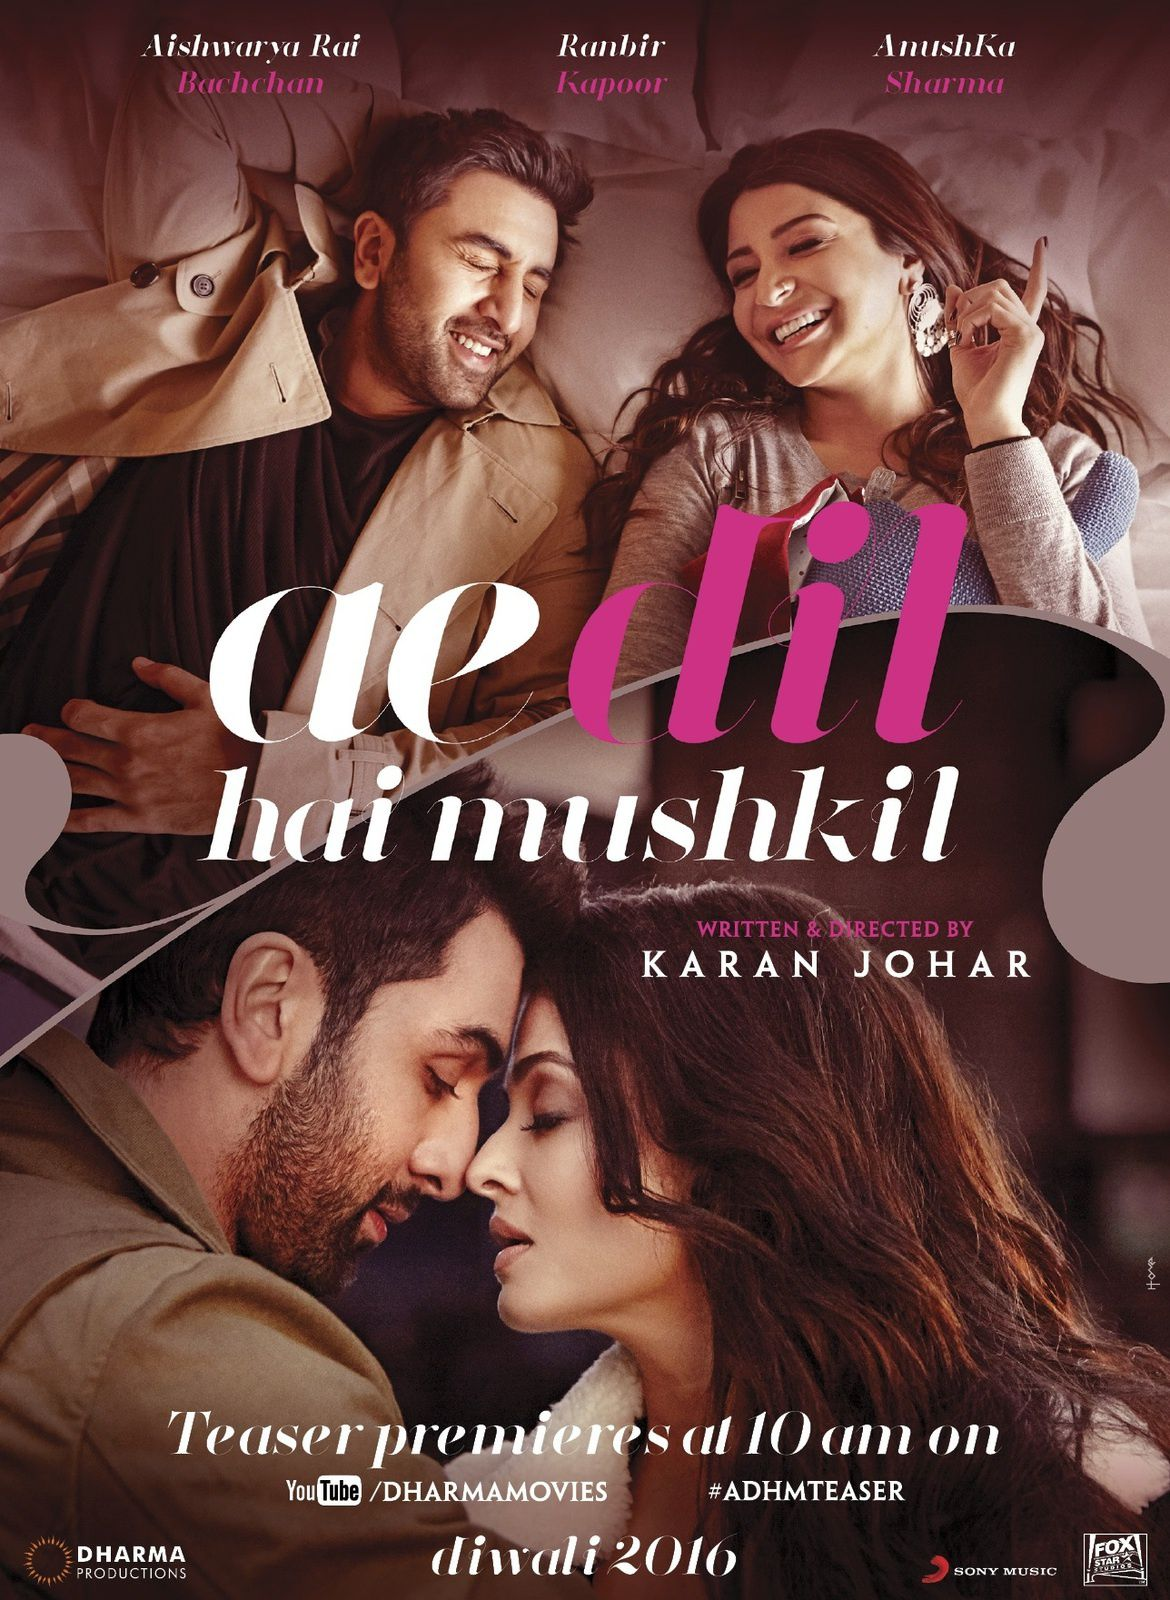 VIBE YOUR MUSICAL HEART WITH AE DIL HAI MUSHKIL ( 2016 ) ...♥